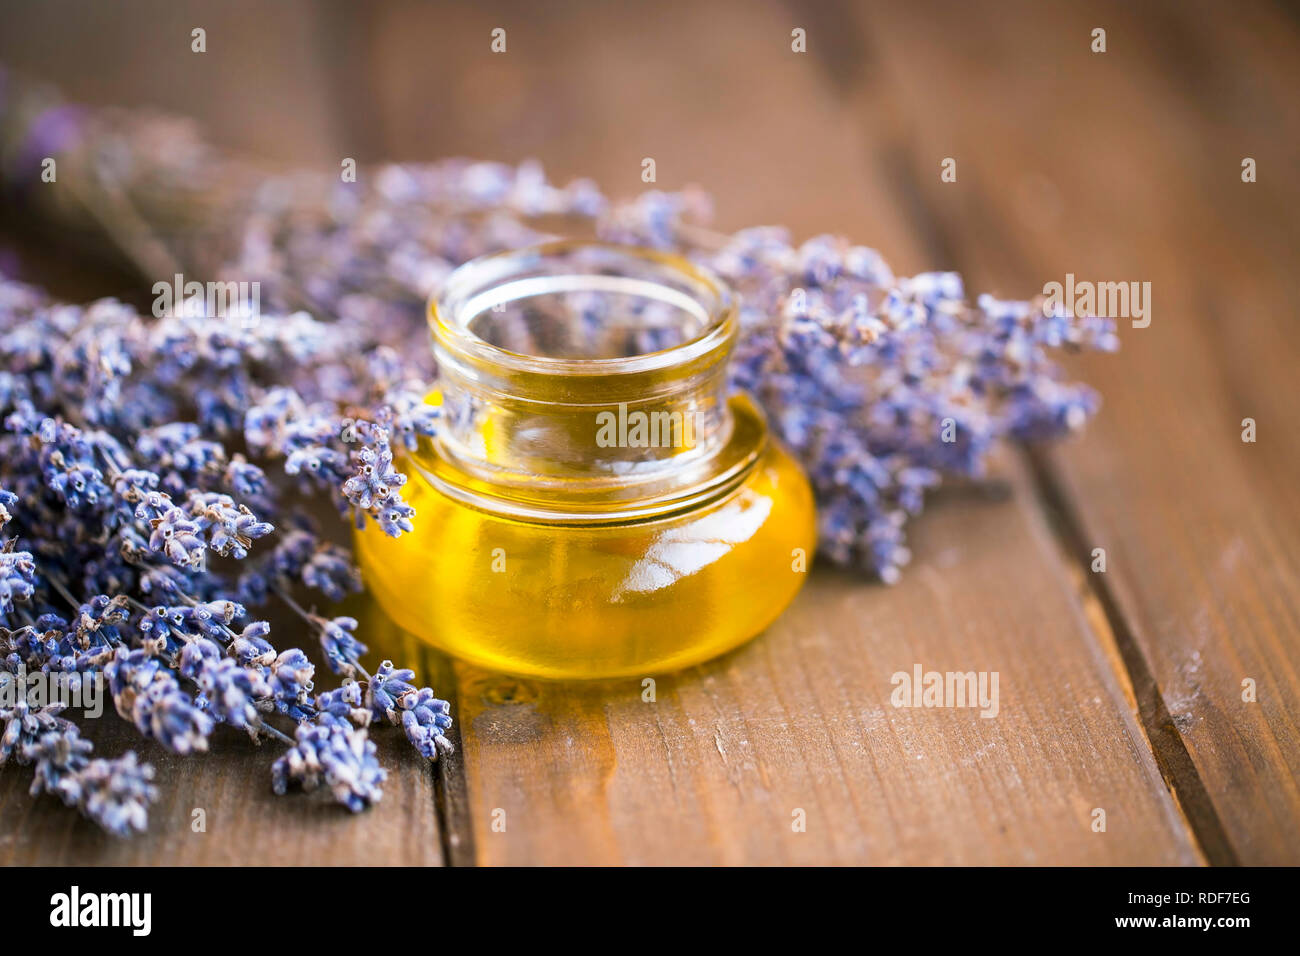 Aromatherapy Lavender Oil Lavender Flowers Spa And Beauty